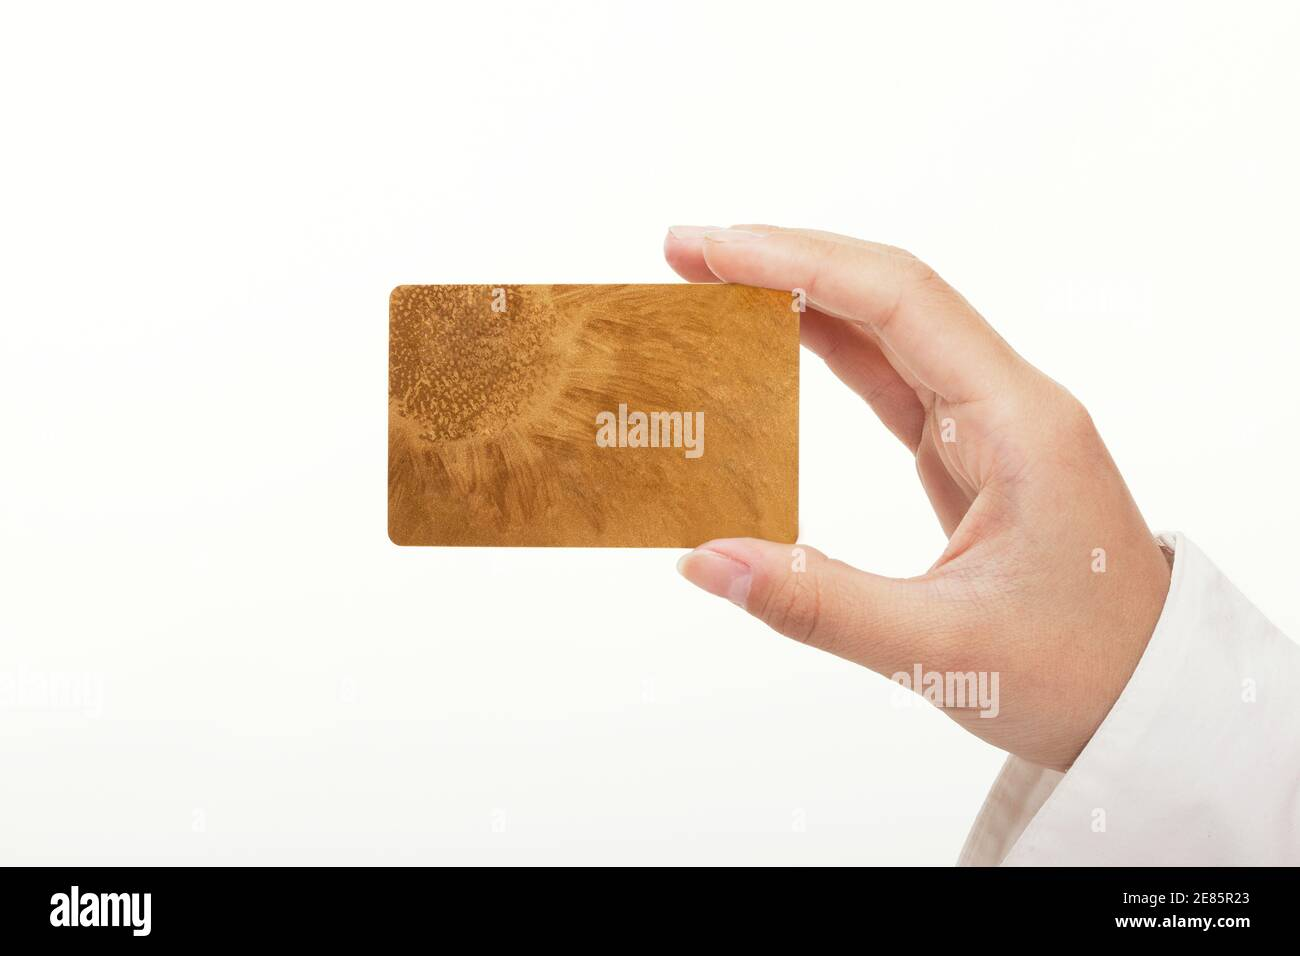 Hand holding bank card high quality photo Stock Photo